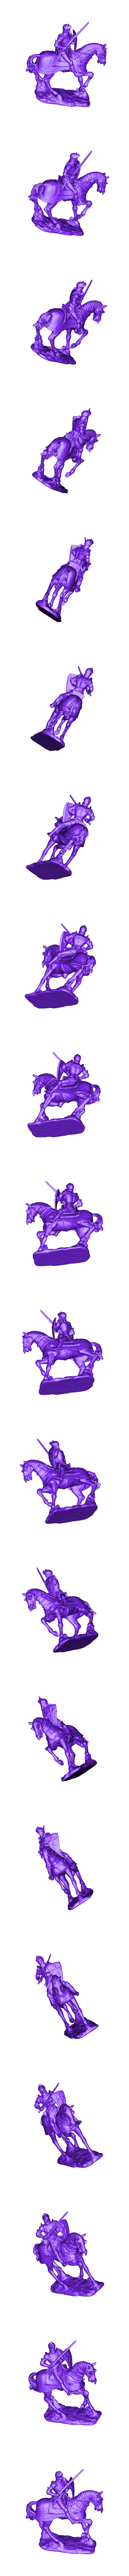 stl_bcc9ba86d3d6d2316d02185858802ded_2208.stl Download free STL file Knight Figurine on Horse • 3D printable design, MarcoDaCunia55